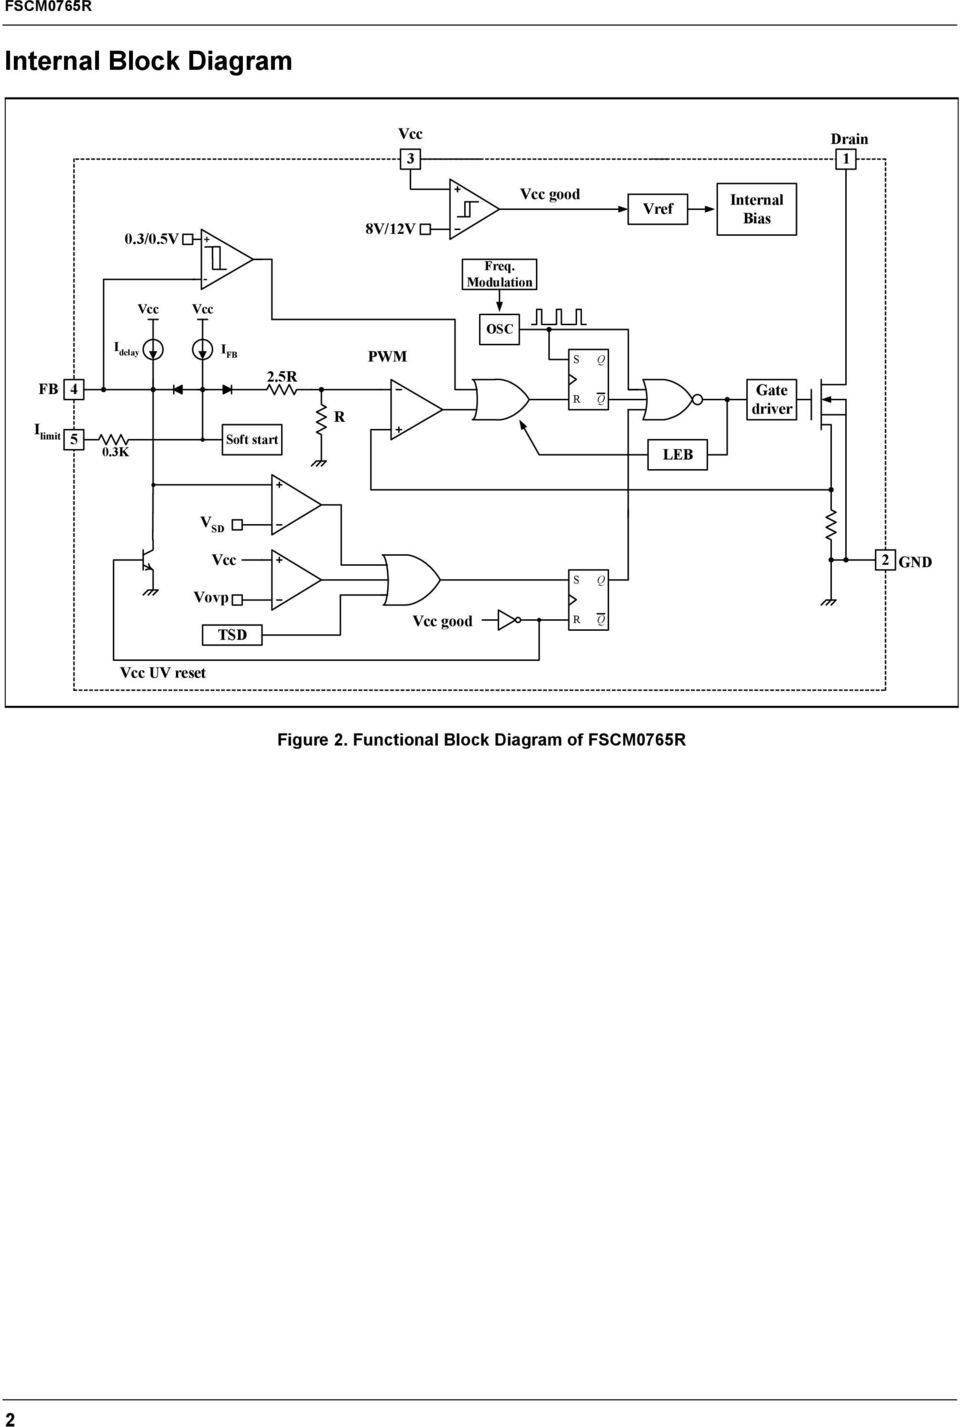 Fscm0765r Green Mode Fairchild Power Switch Fps Tm Features Figure 2 Block Diagram Of An Lcd Tv Supply Modulation Vcc Osc Fb I Limit 4 5 Delay 03k